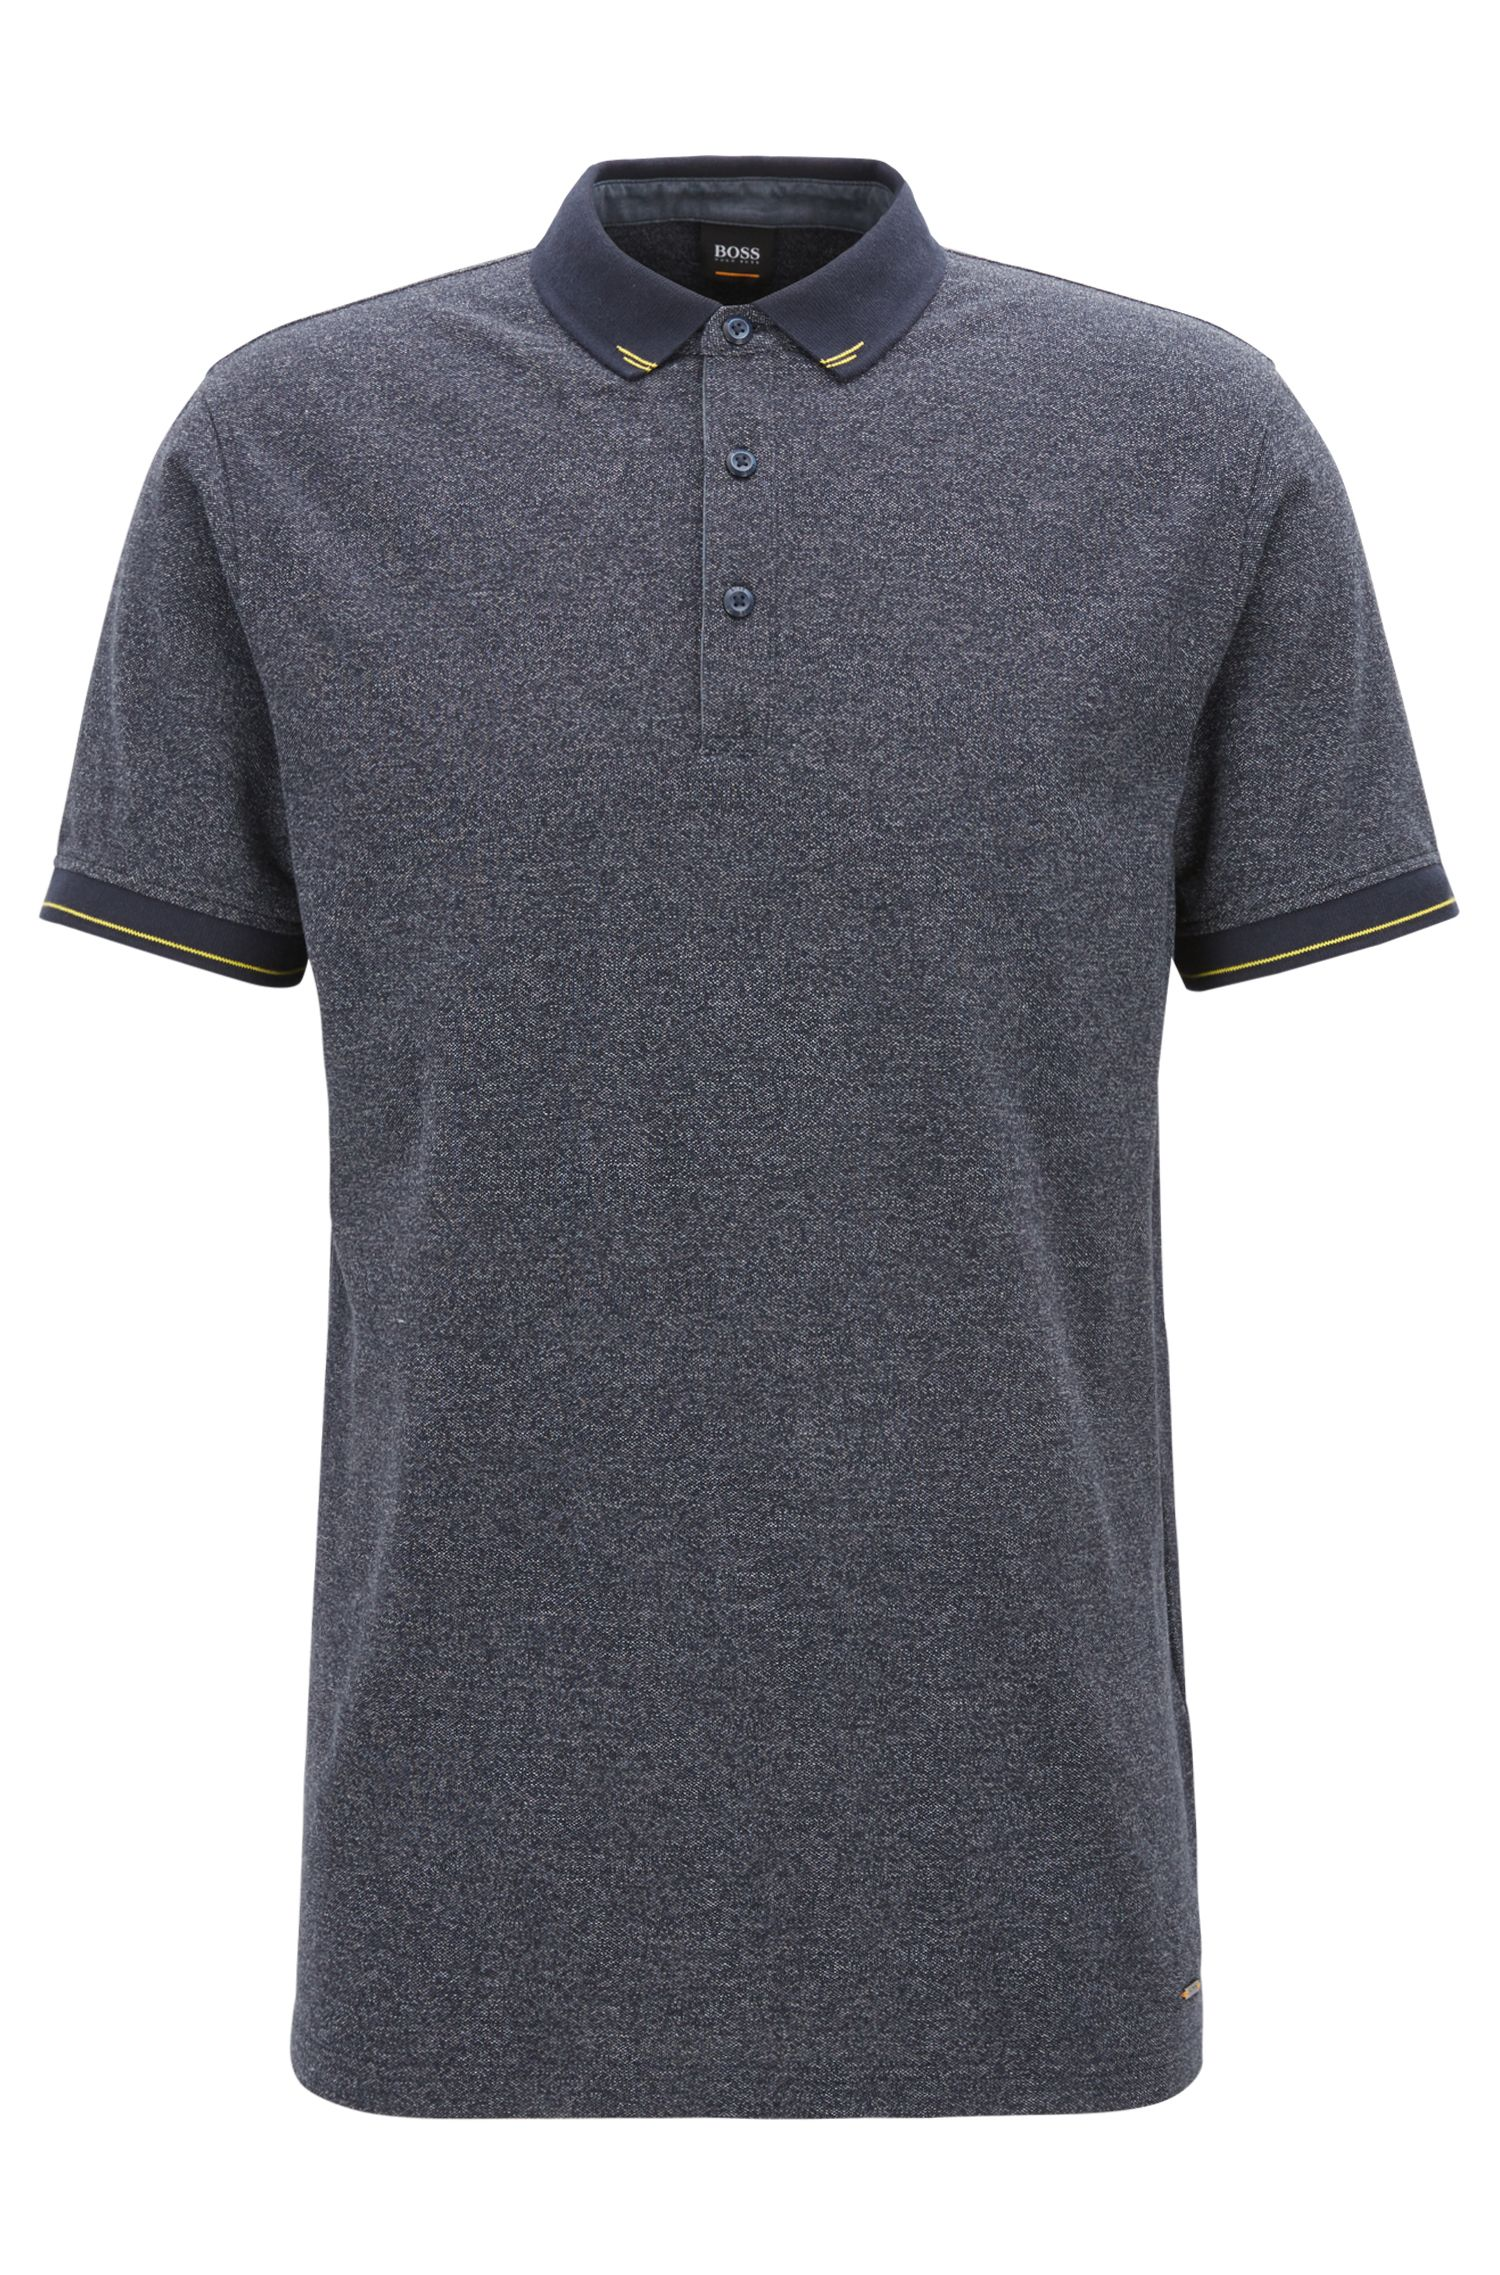 Denim-look polo shirt with contrast details, Dark Blue